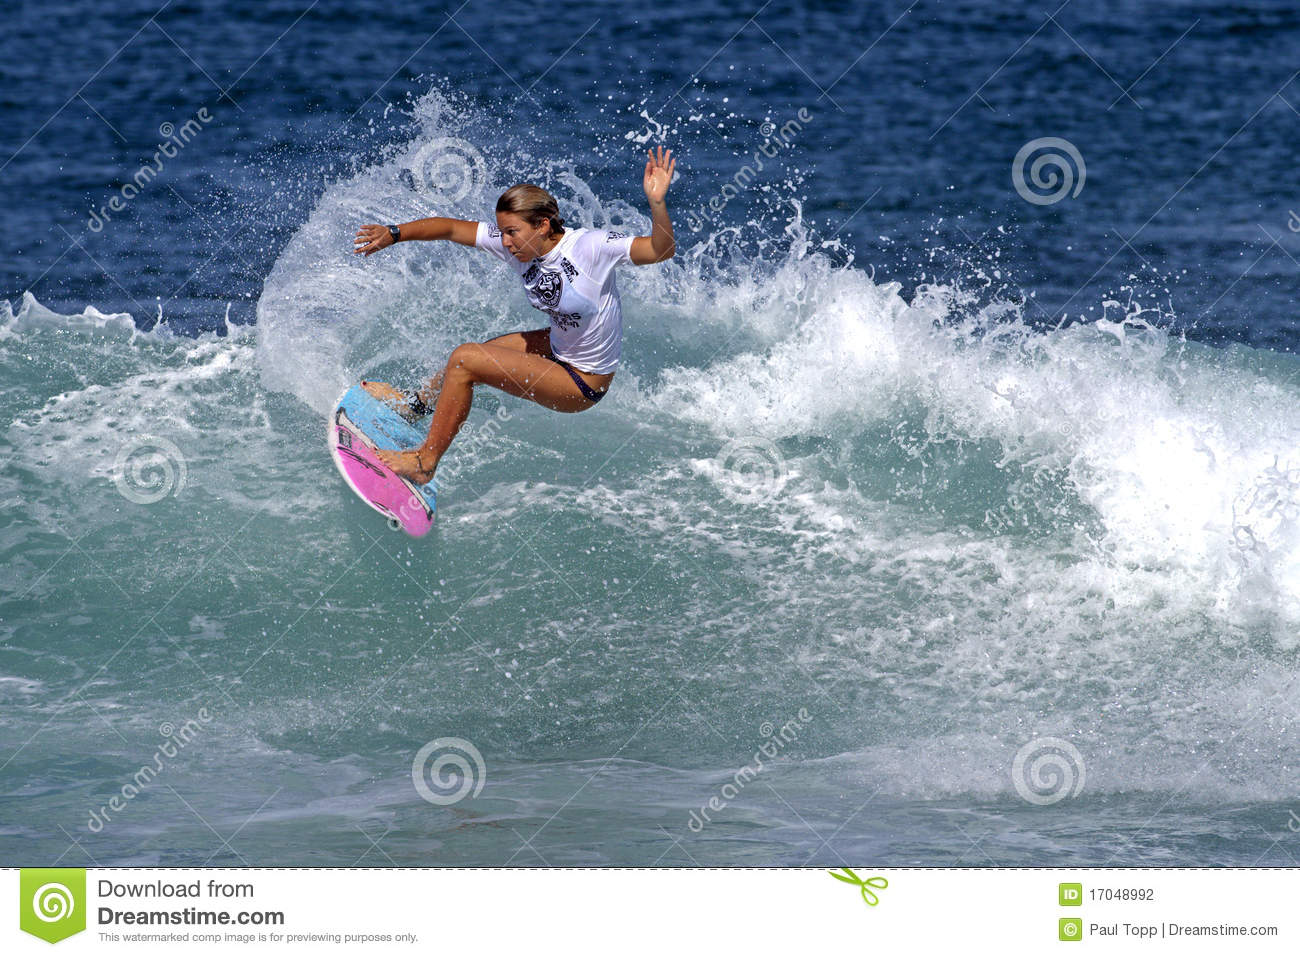 haleiwa girls Plan to visit north shore surf girls - surf school, united states get details of location, timings and contact find the reviews and ratings to know better.